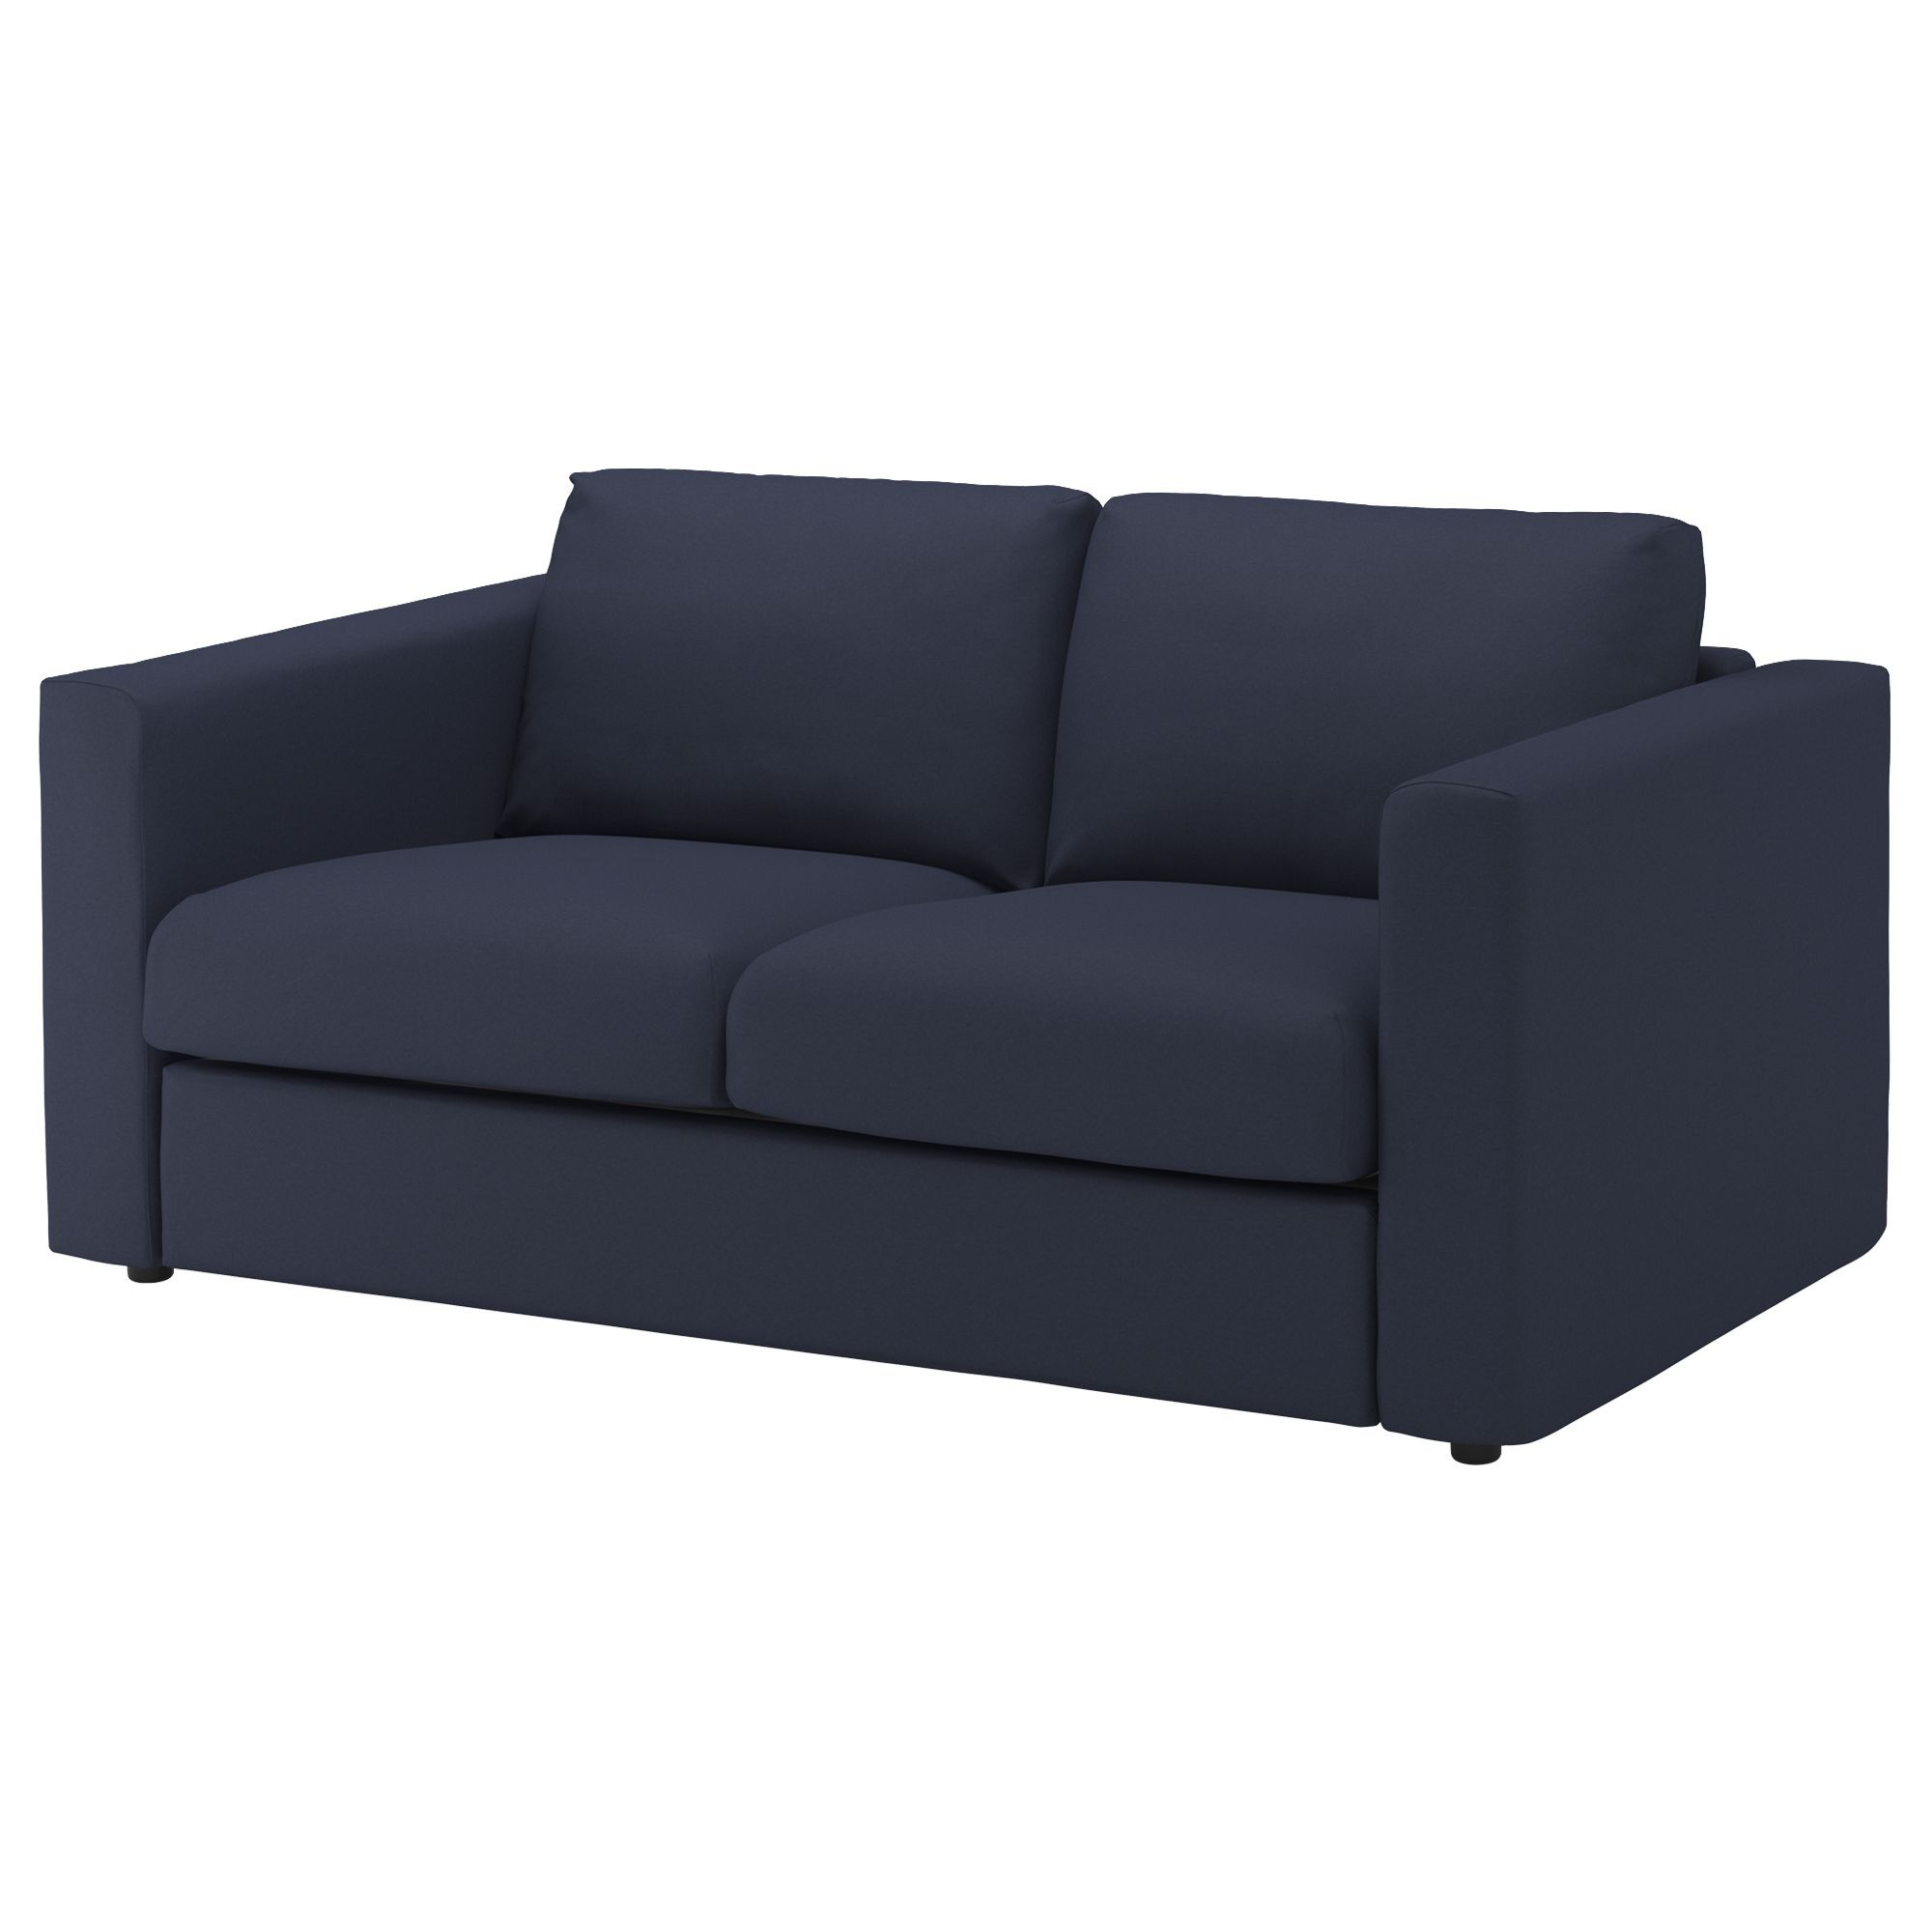 Ikea Vimle Cover For Loveseat Orrsta Black Blue